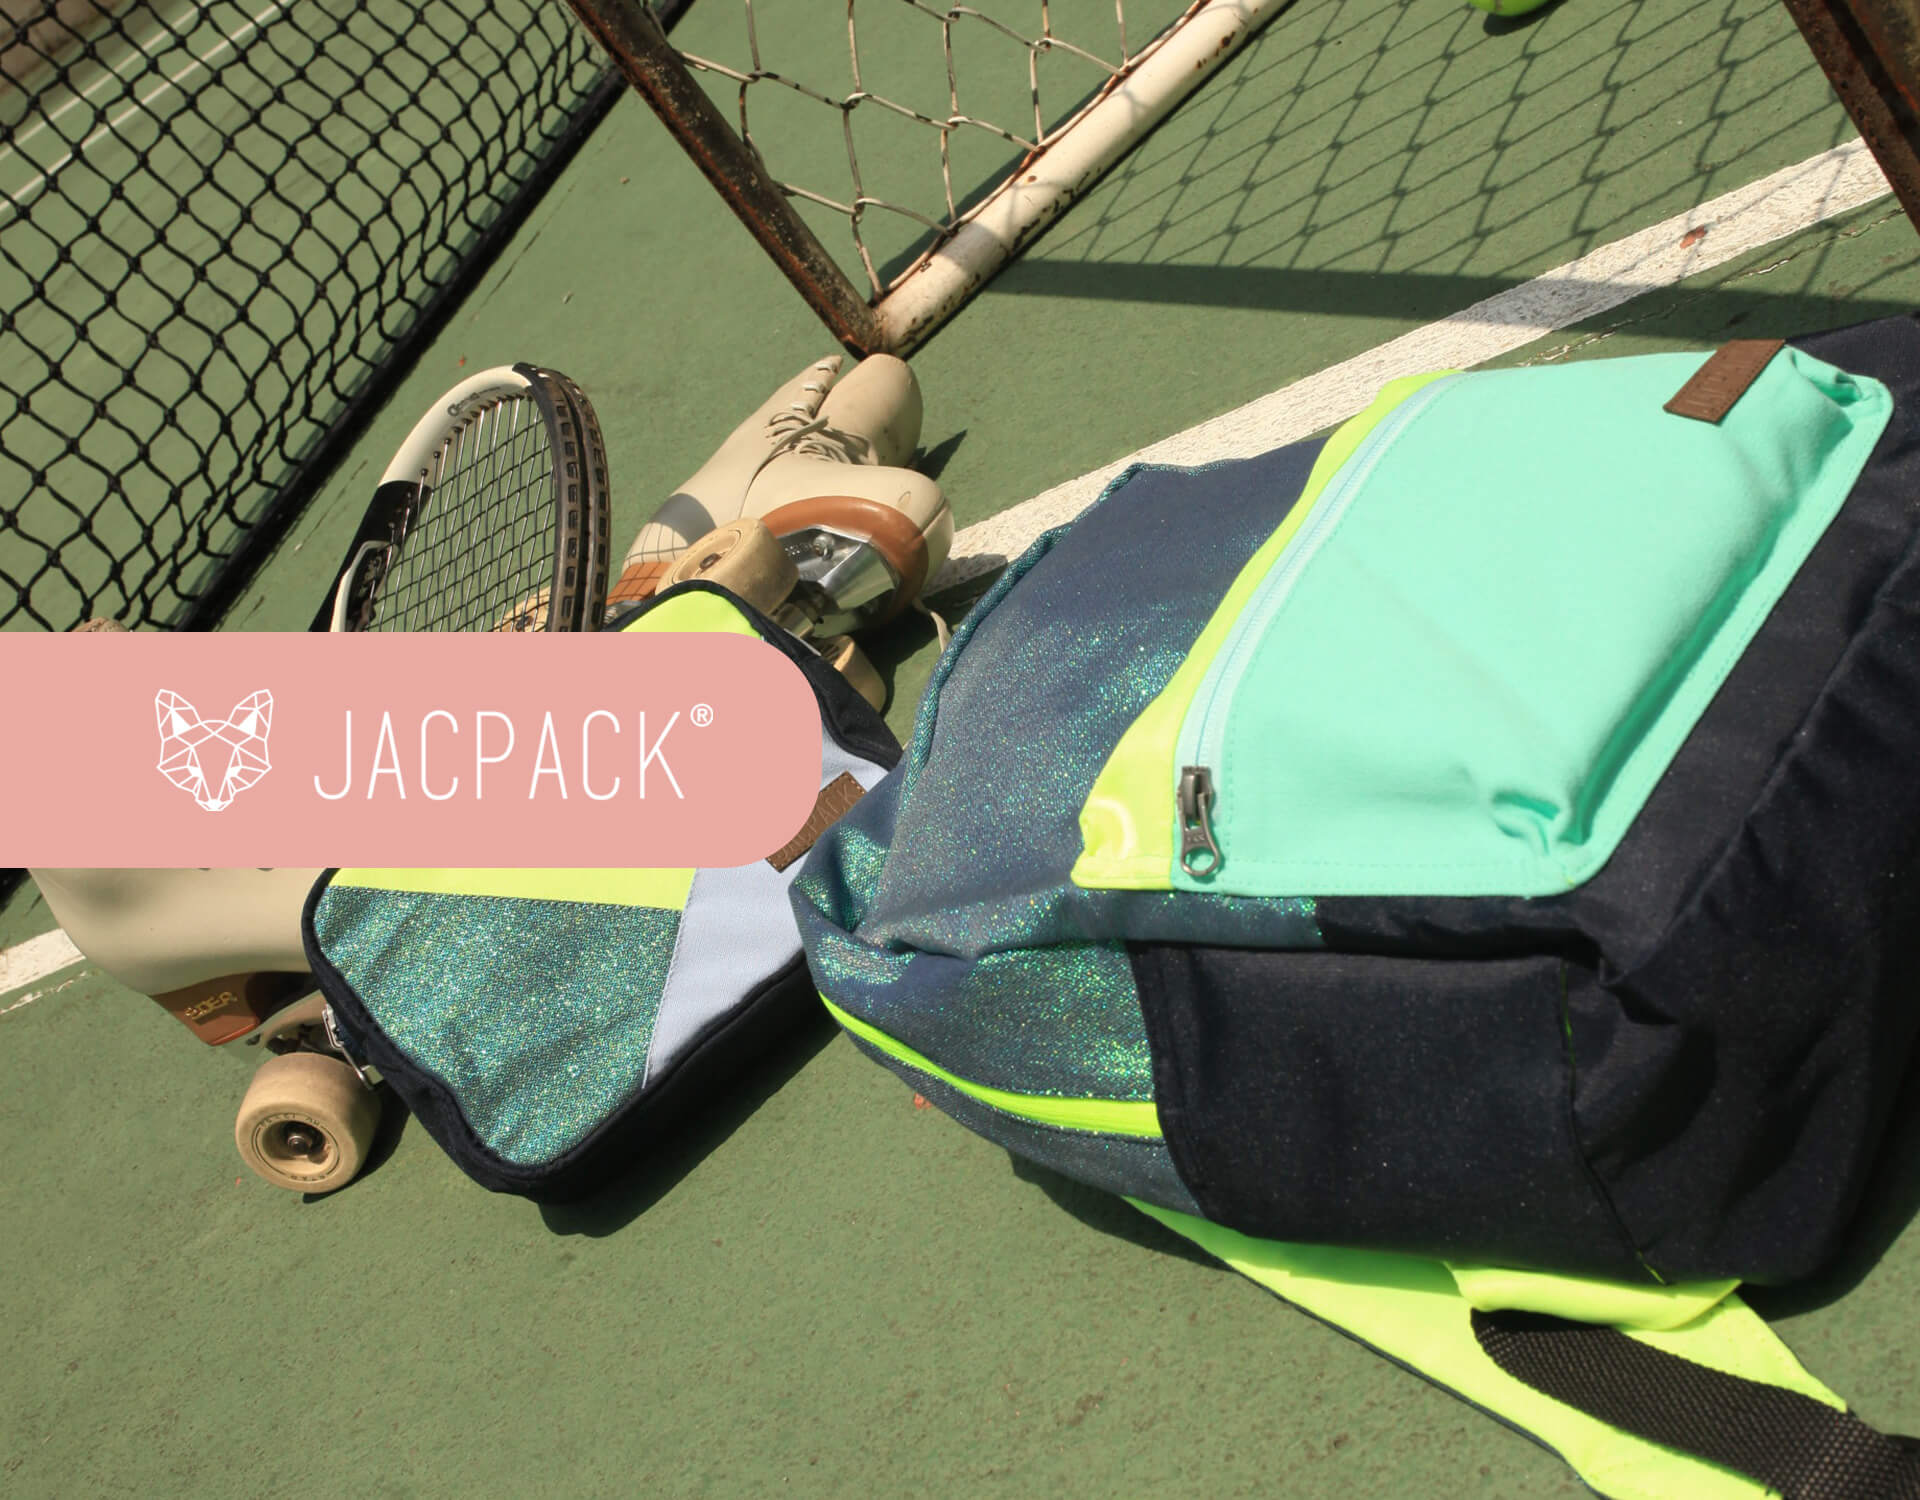 jacpack web front